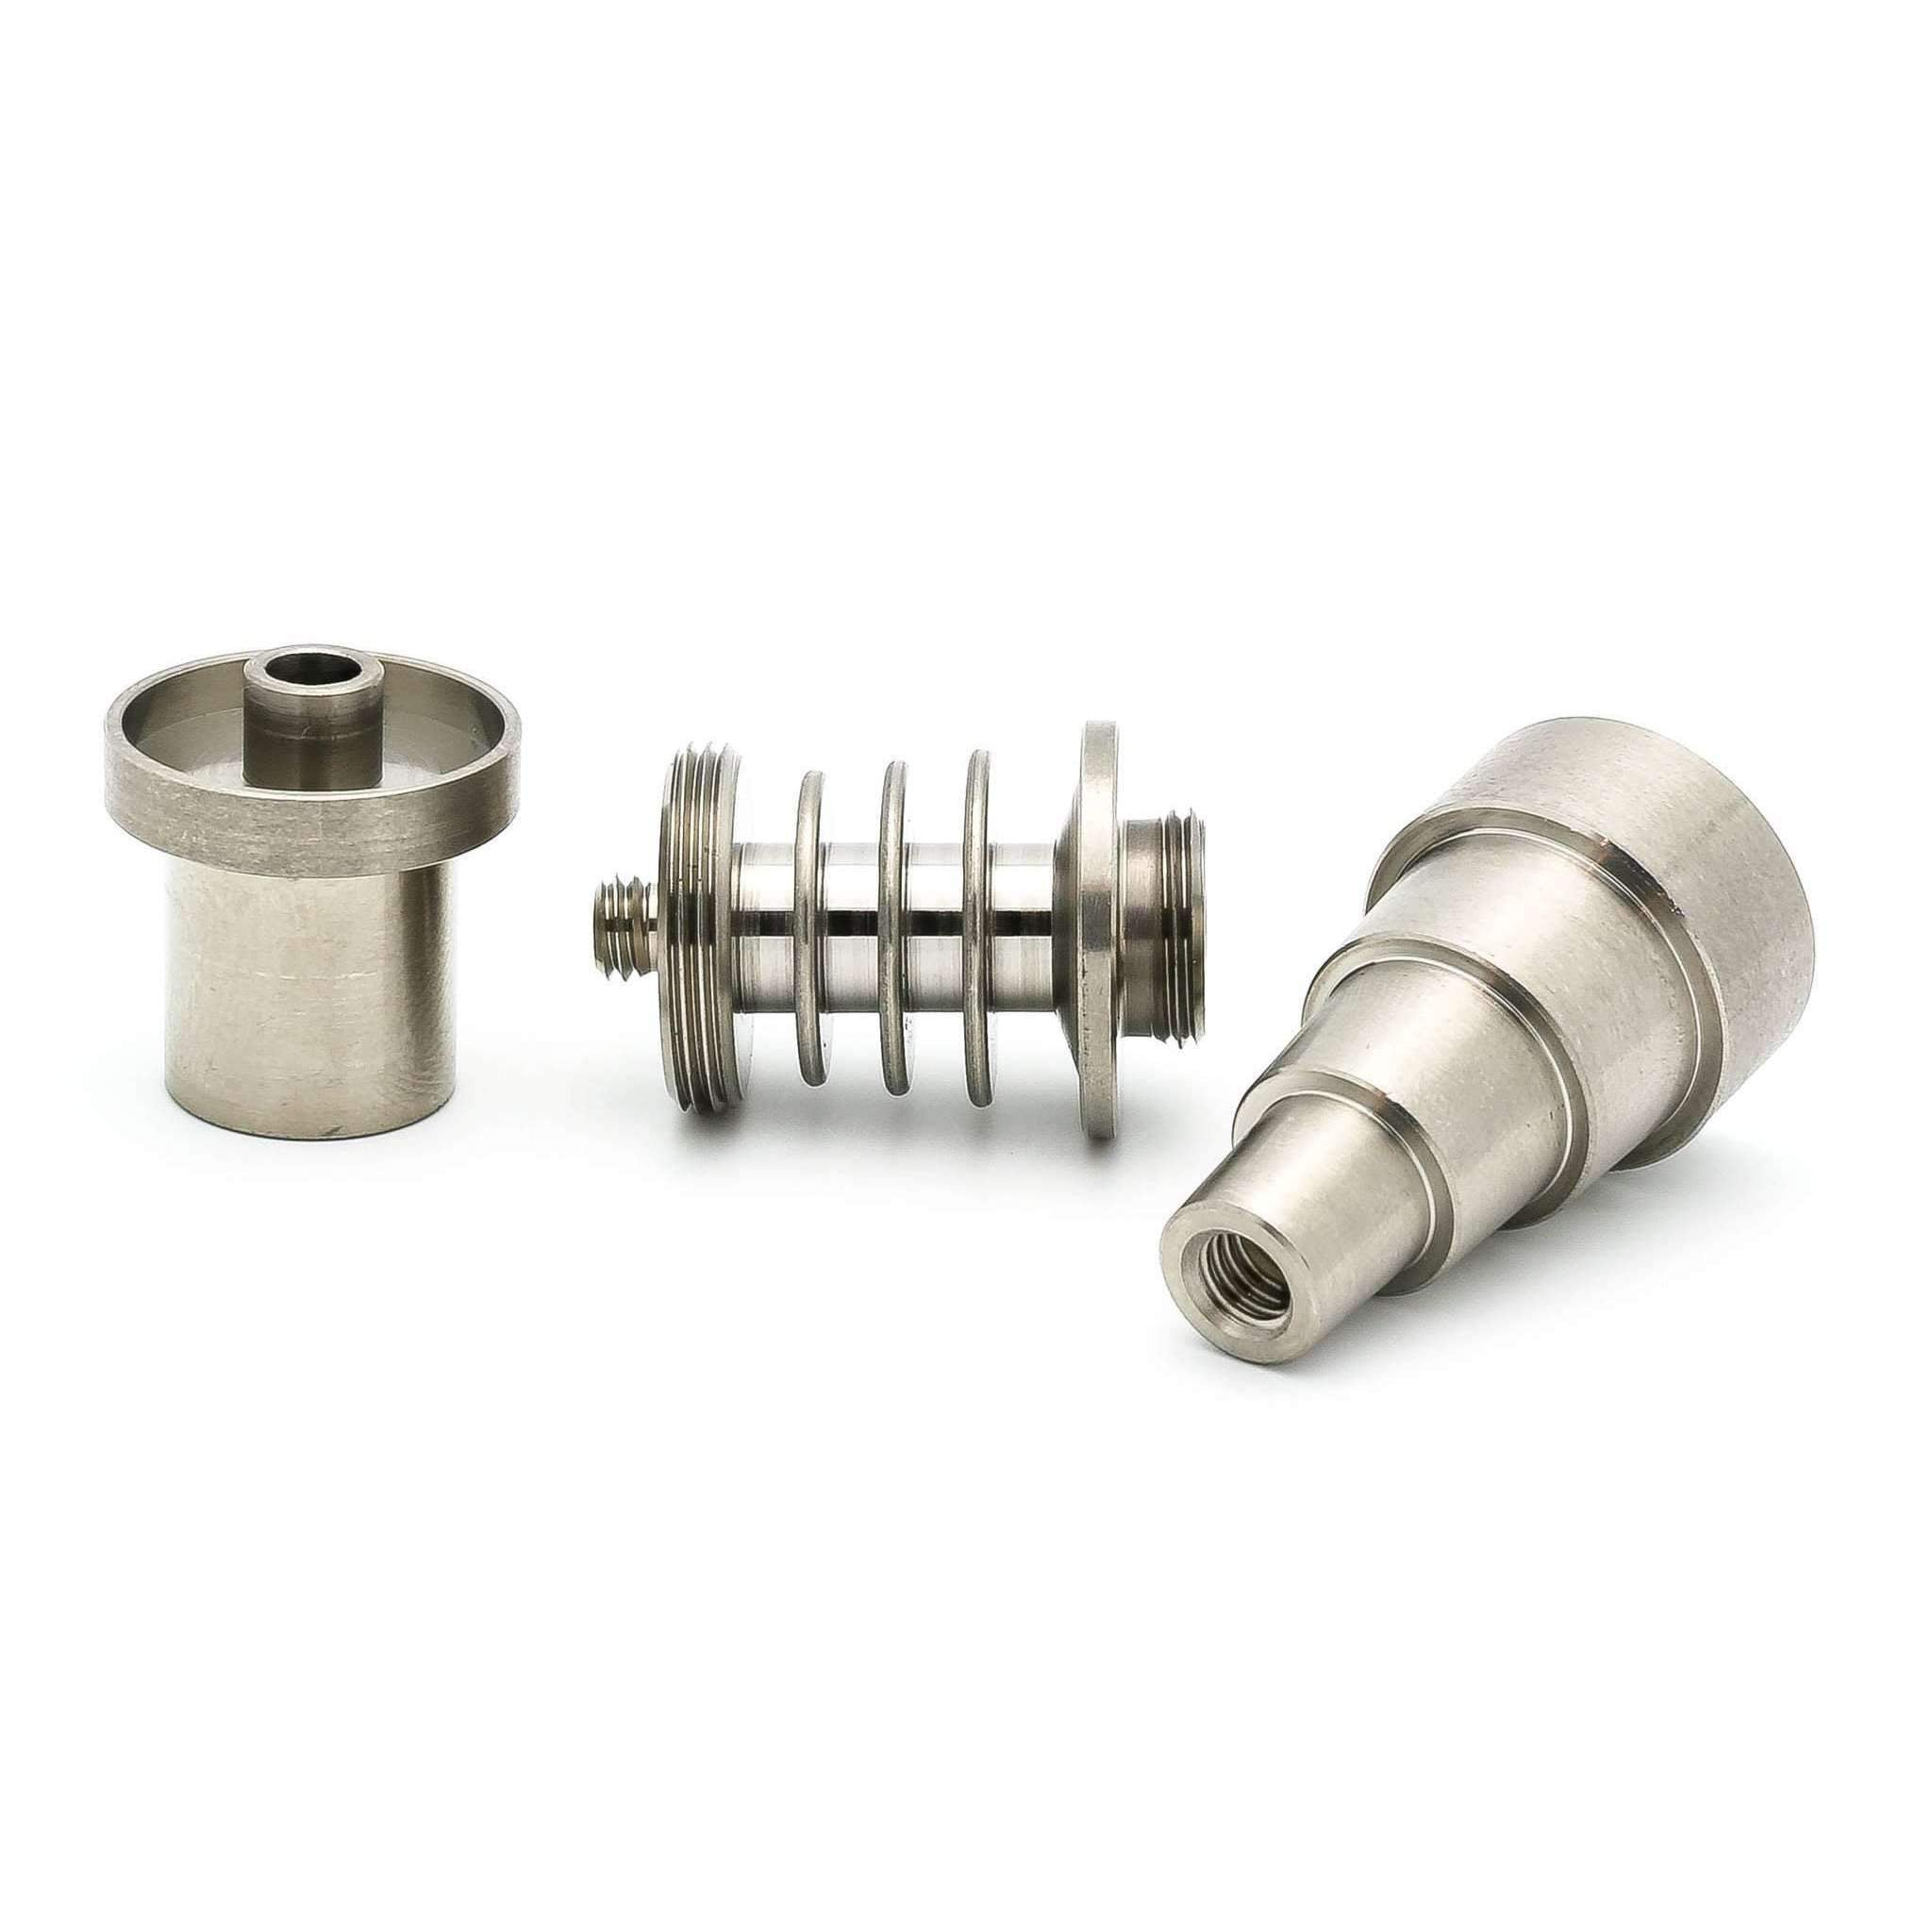 StickyNail (6 in 1 Universal) 10mm / 14mm / 18mm Domeless Ti Nail Male & Female Joint